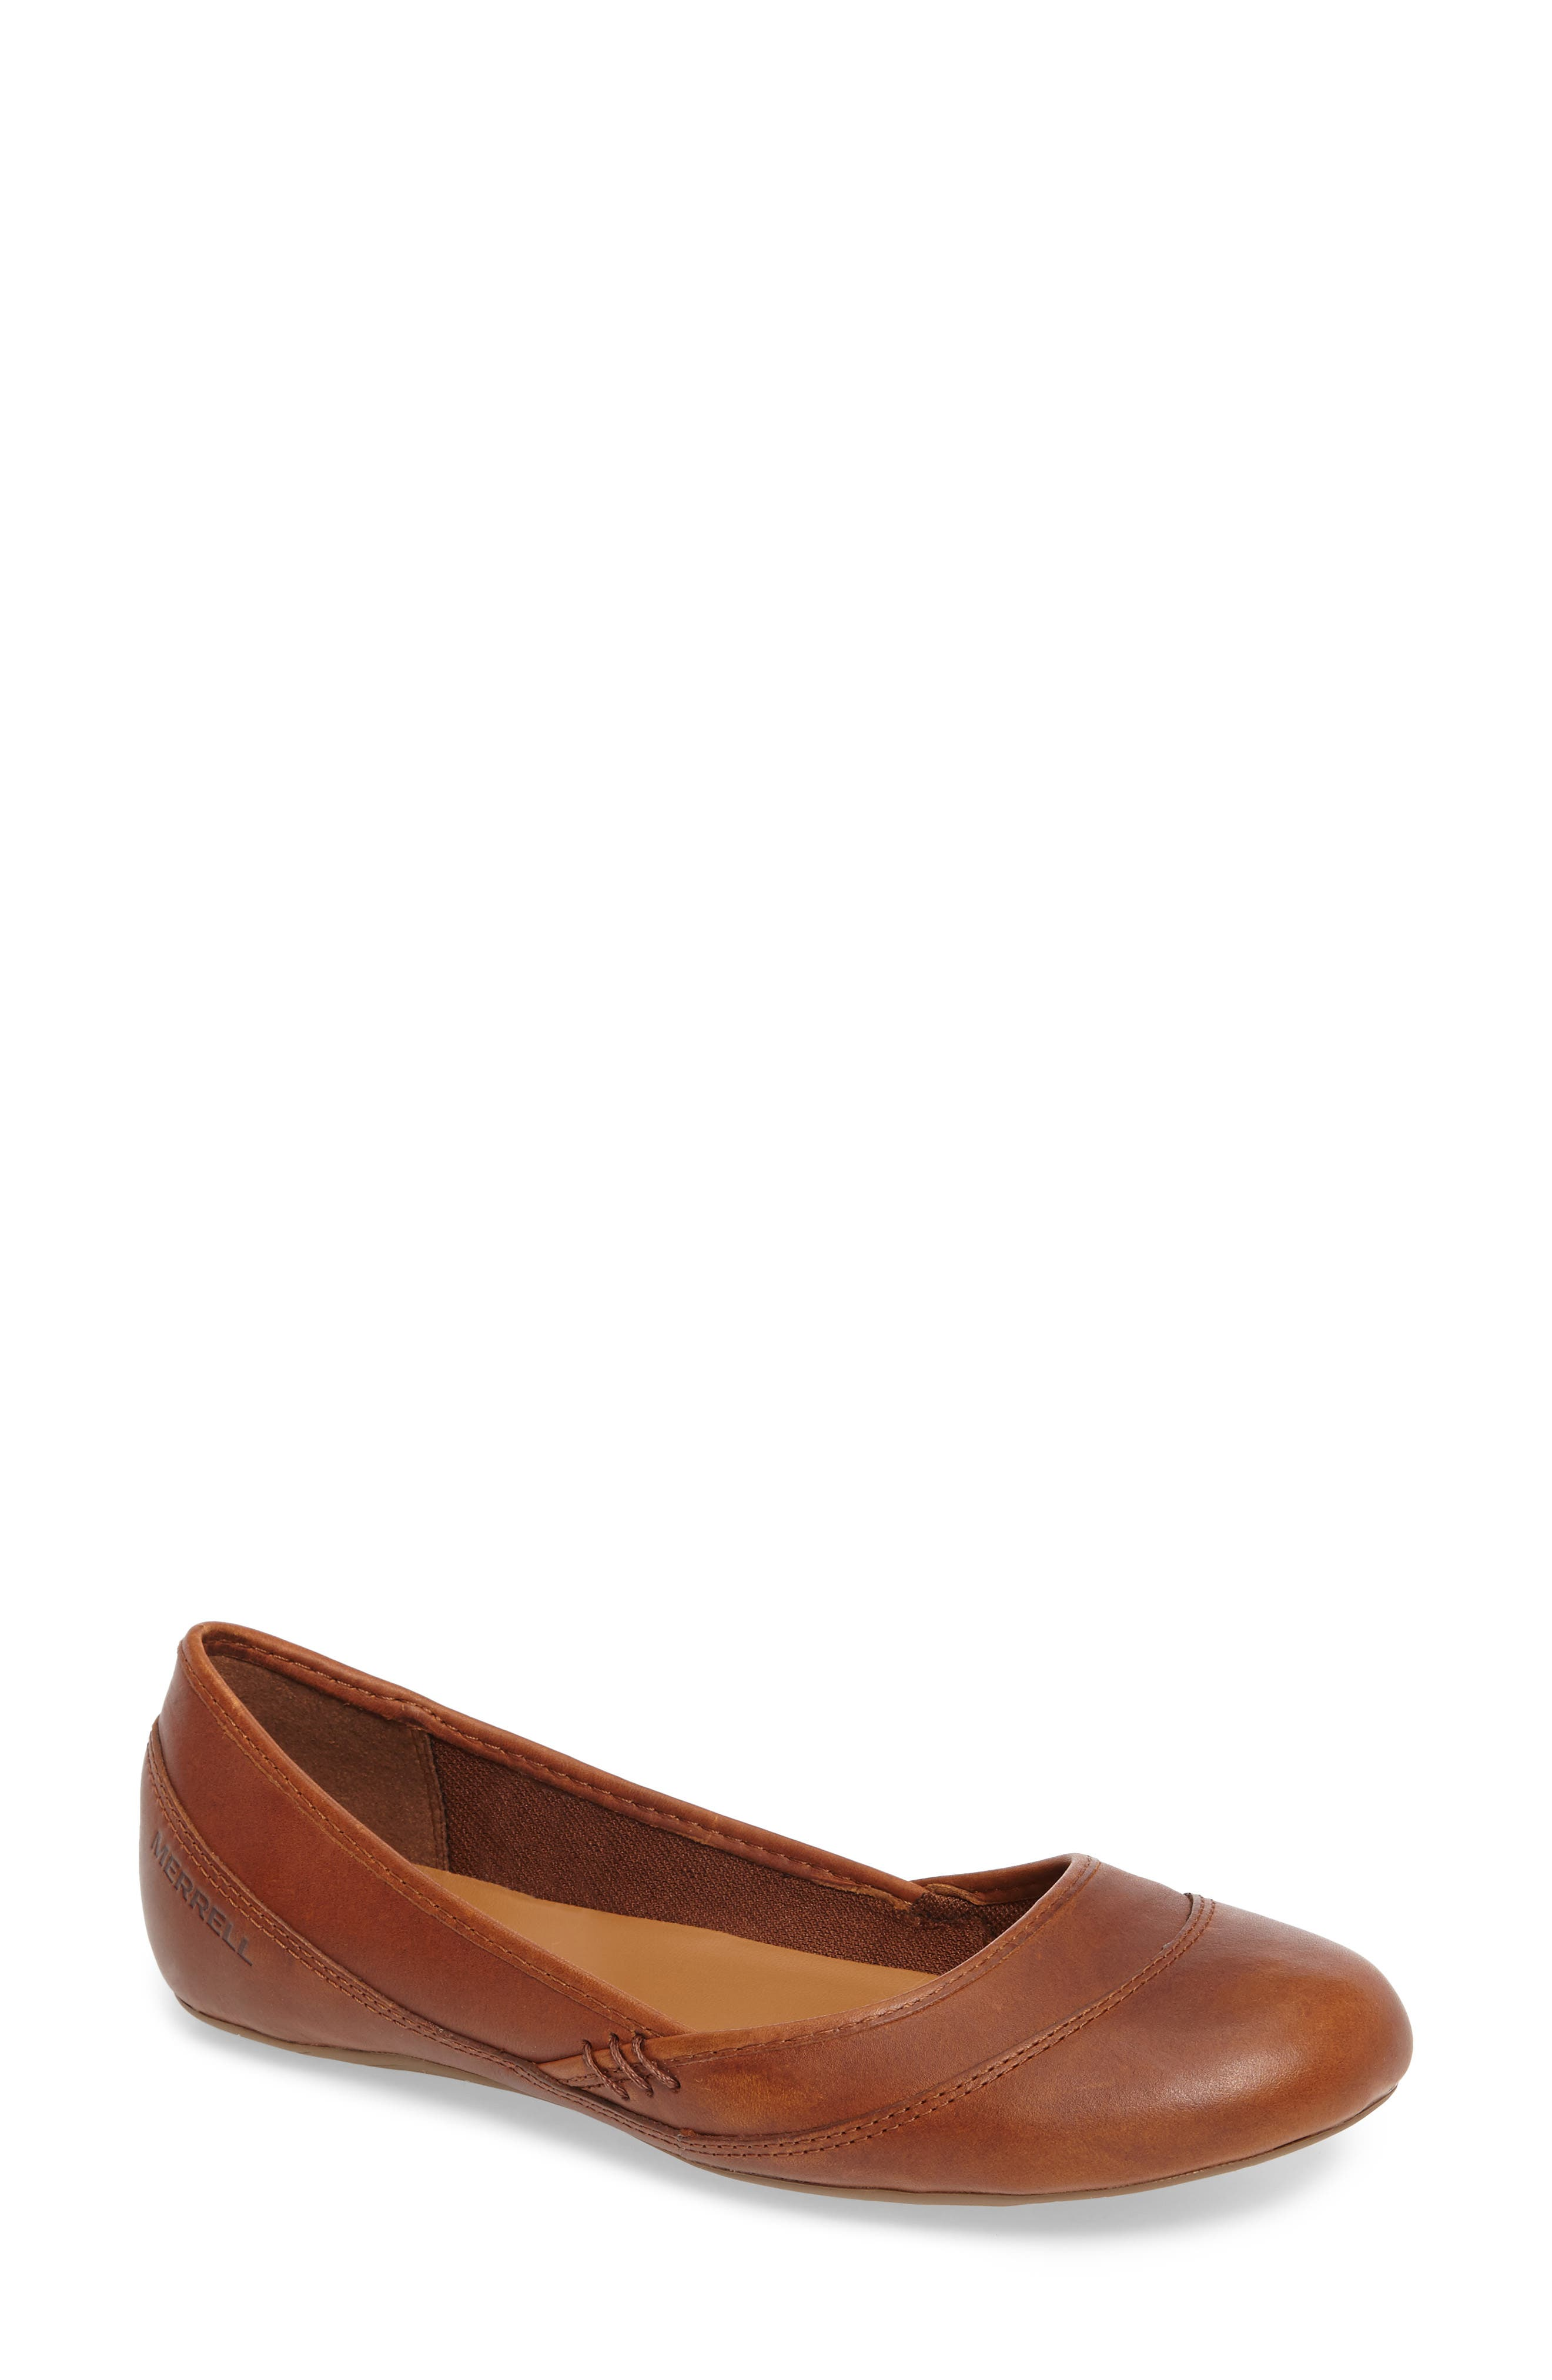 Alternate Image 1 Selected - Merrell Ember Ballet Flat (Women)